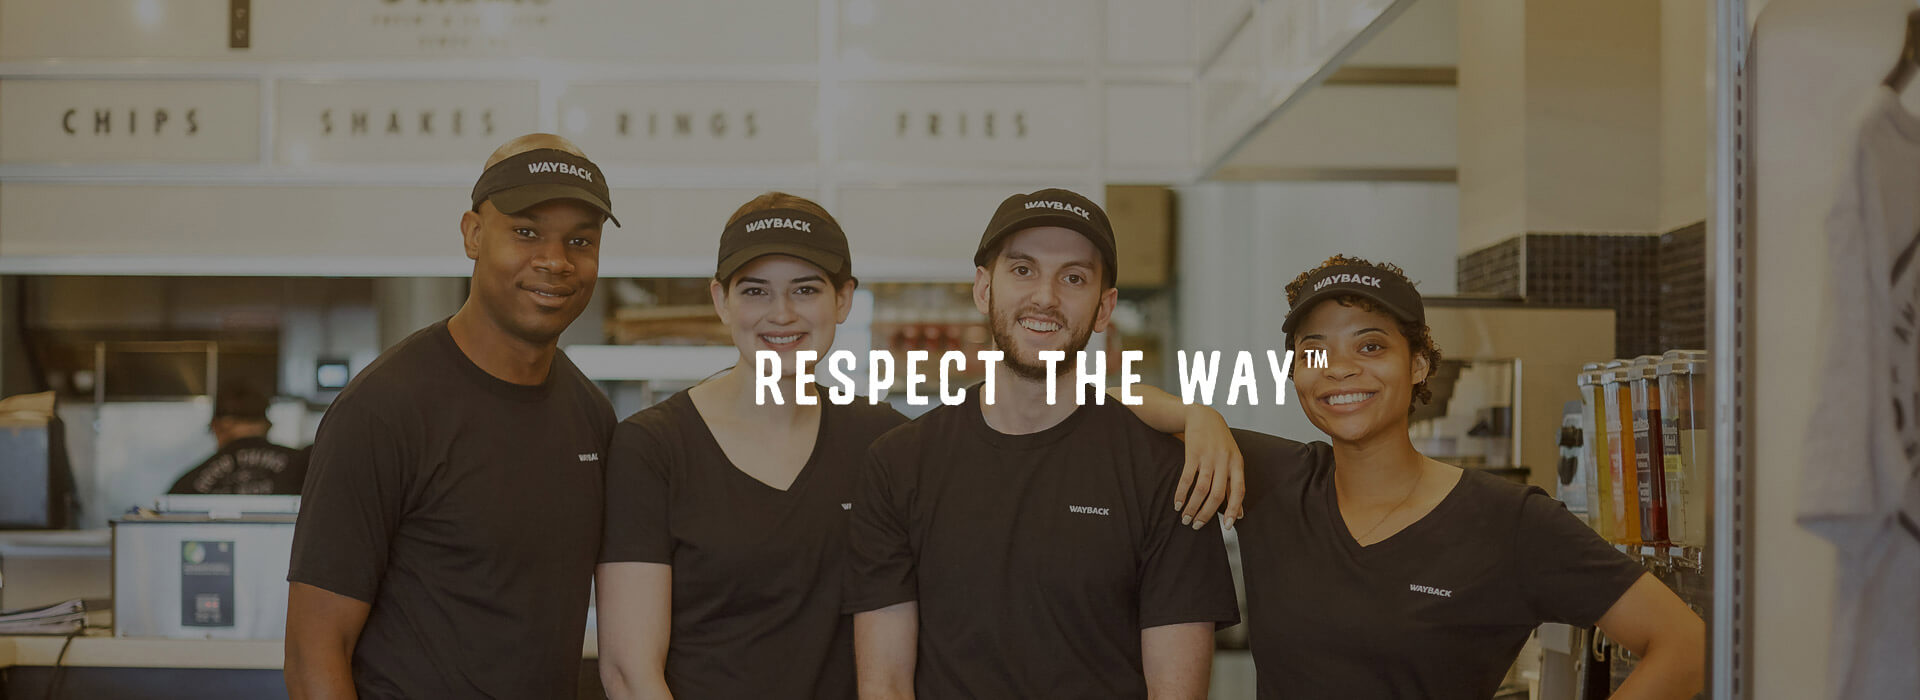 Respect the way